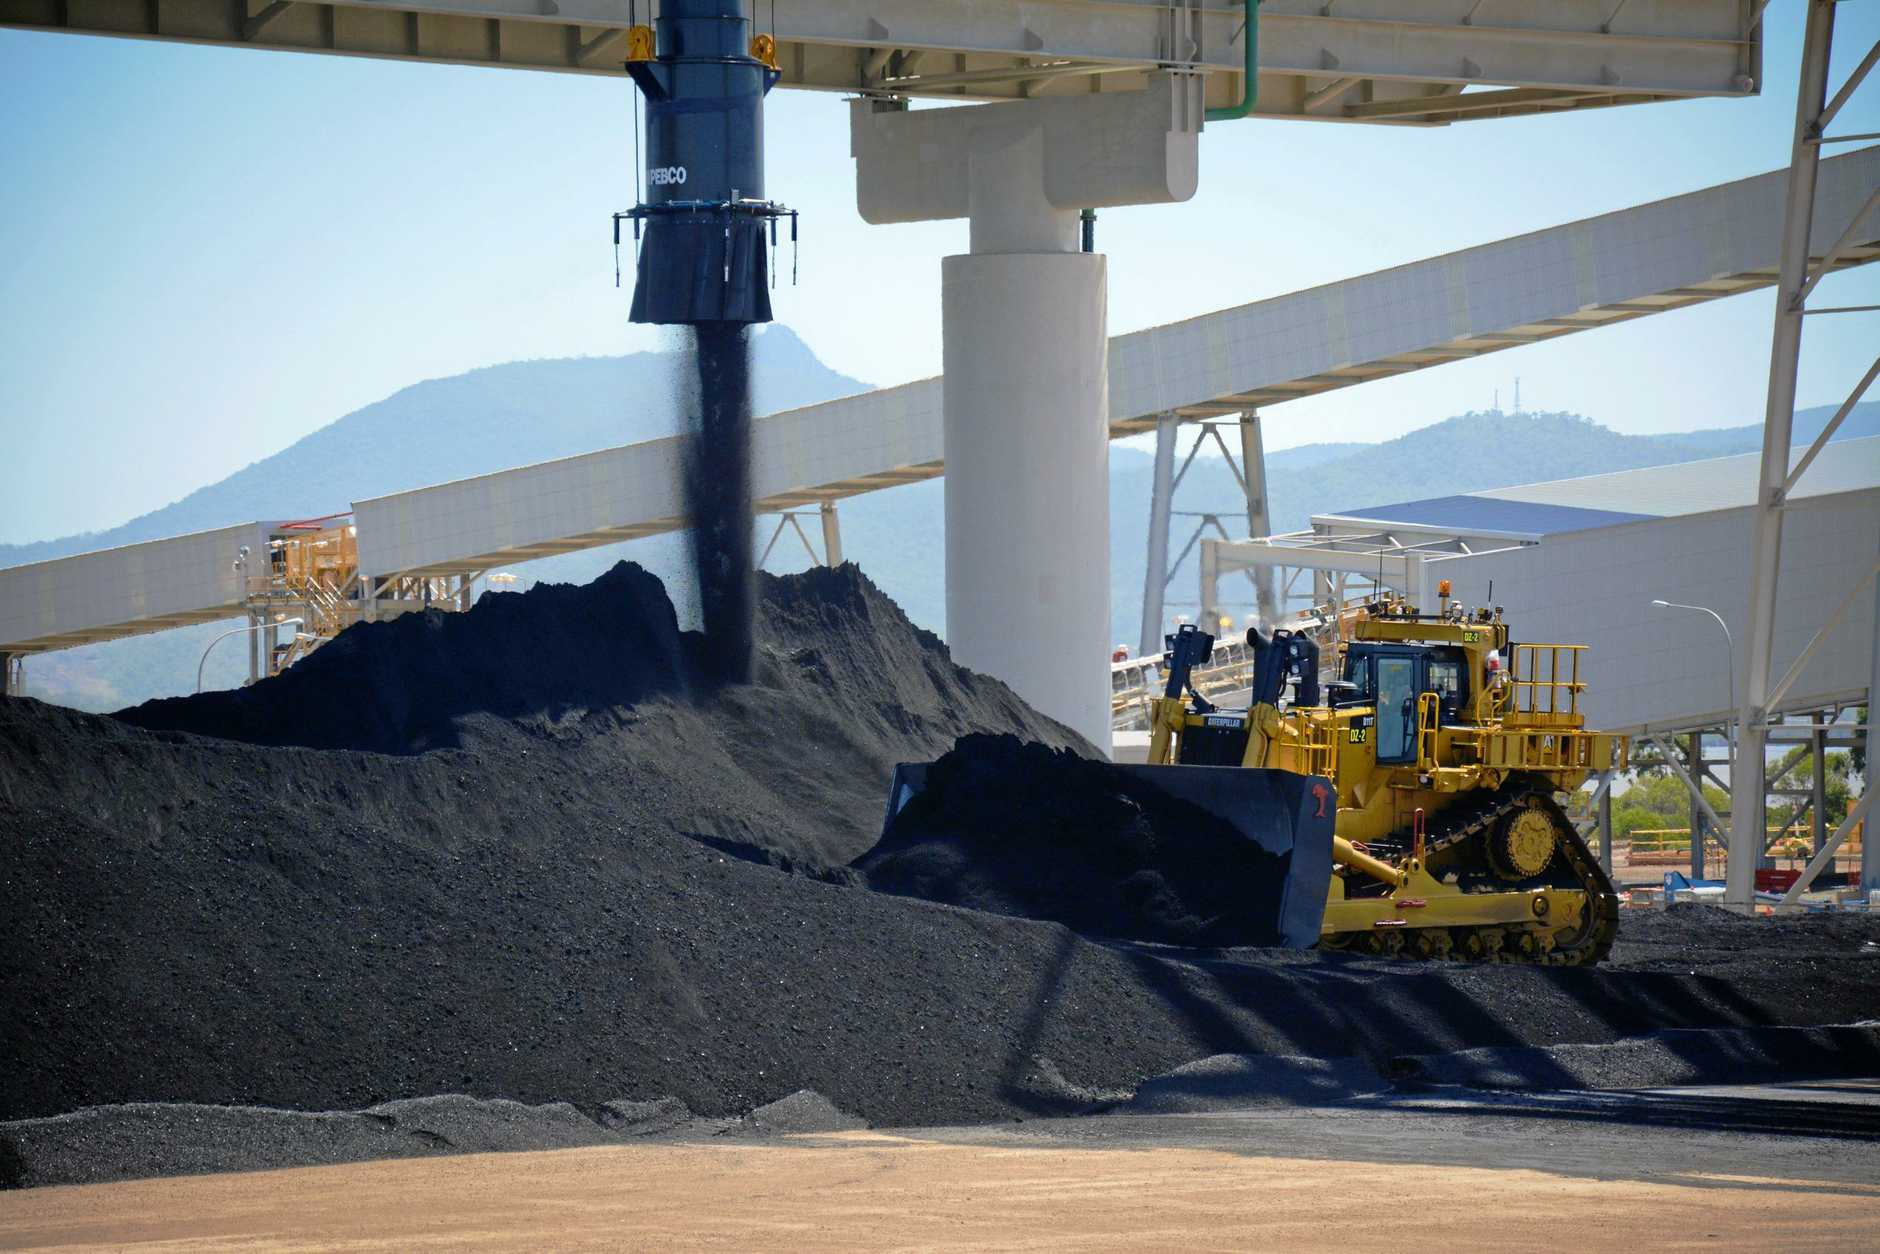 Coal exports totalled $34.9 billion in October